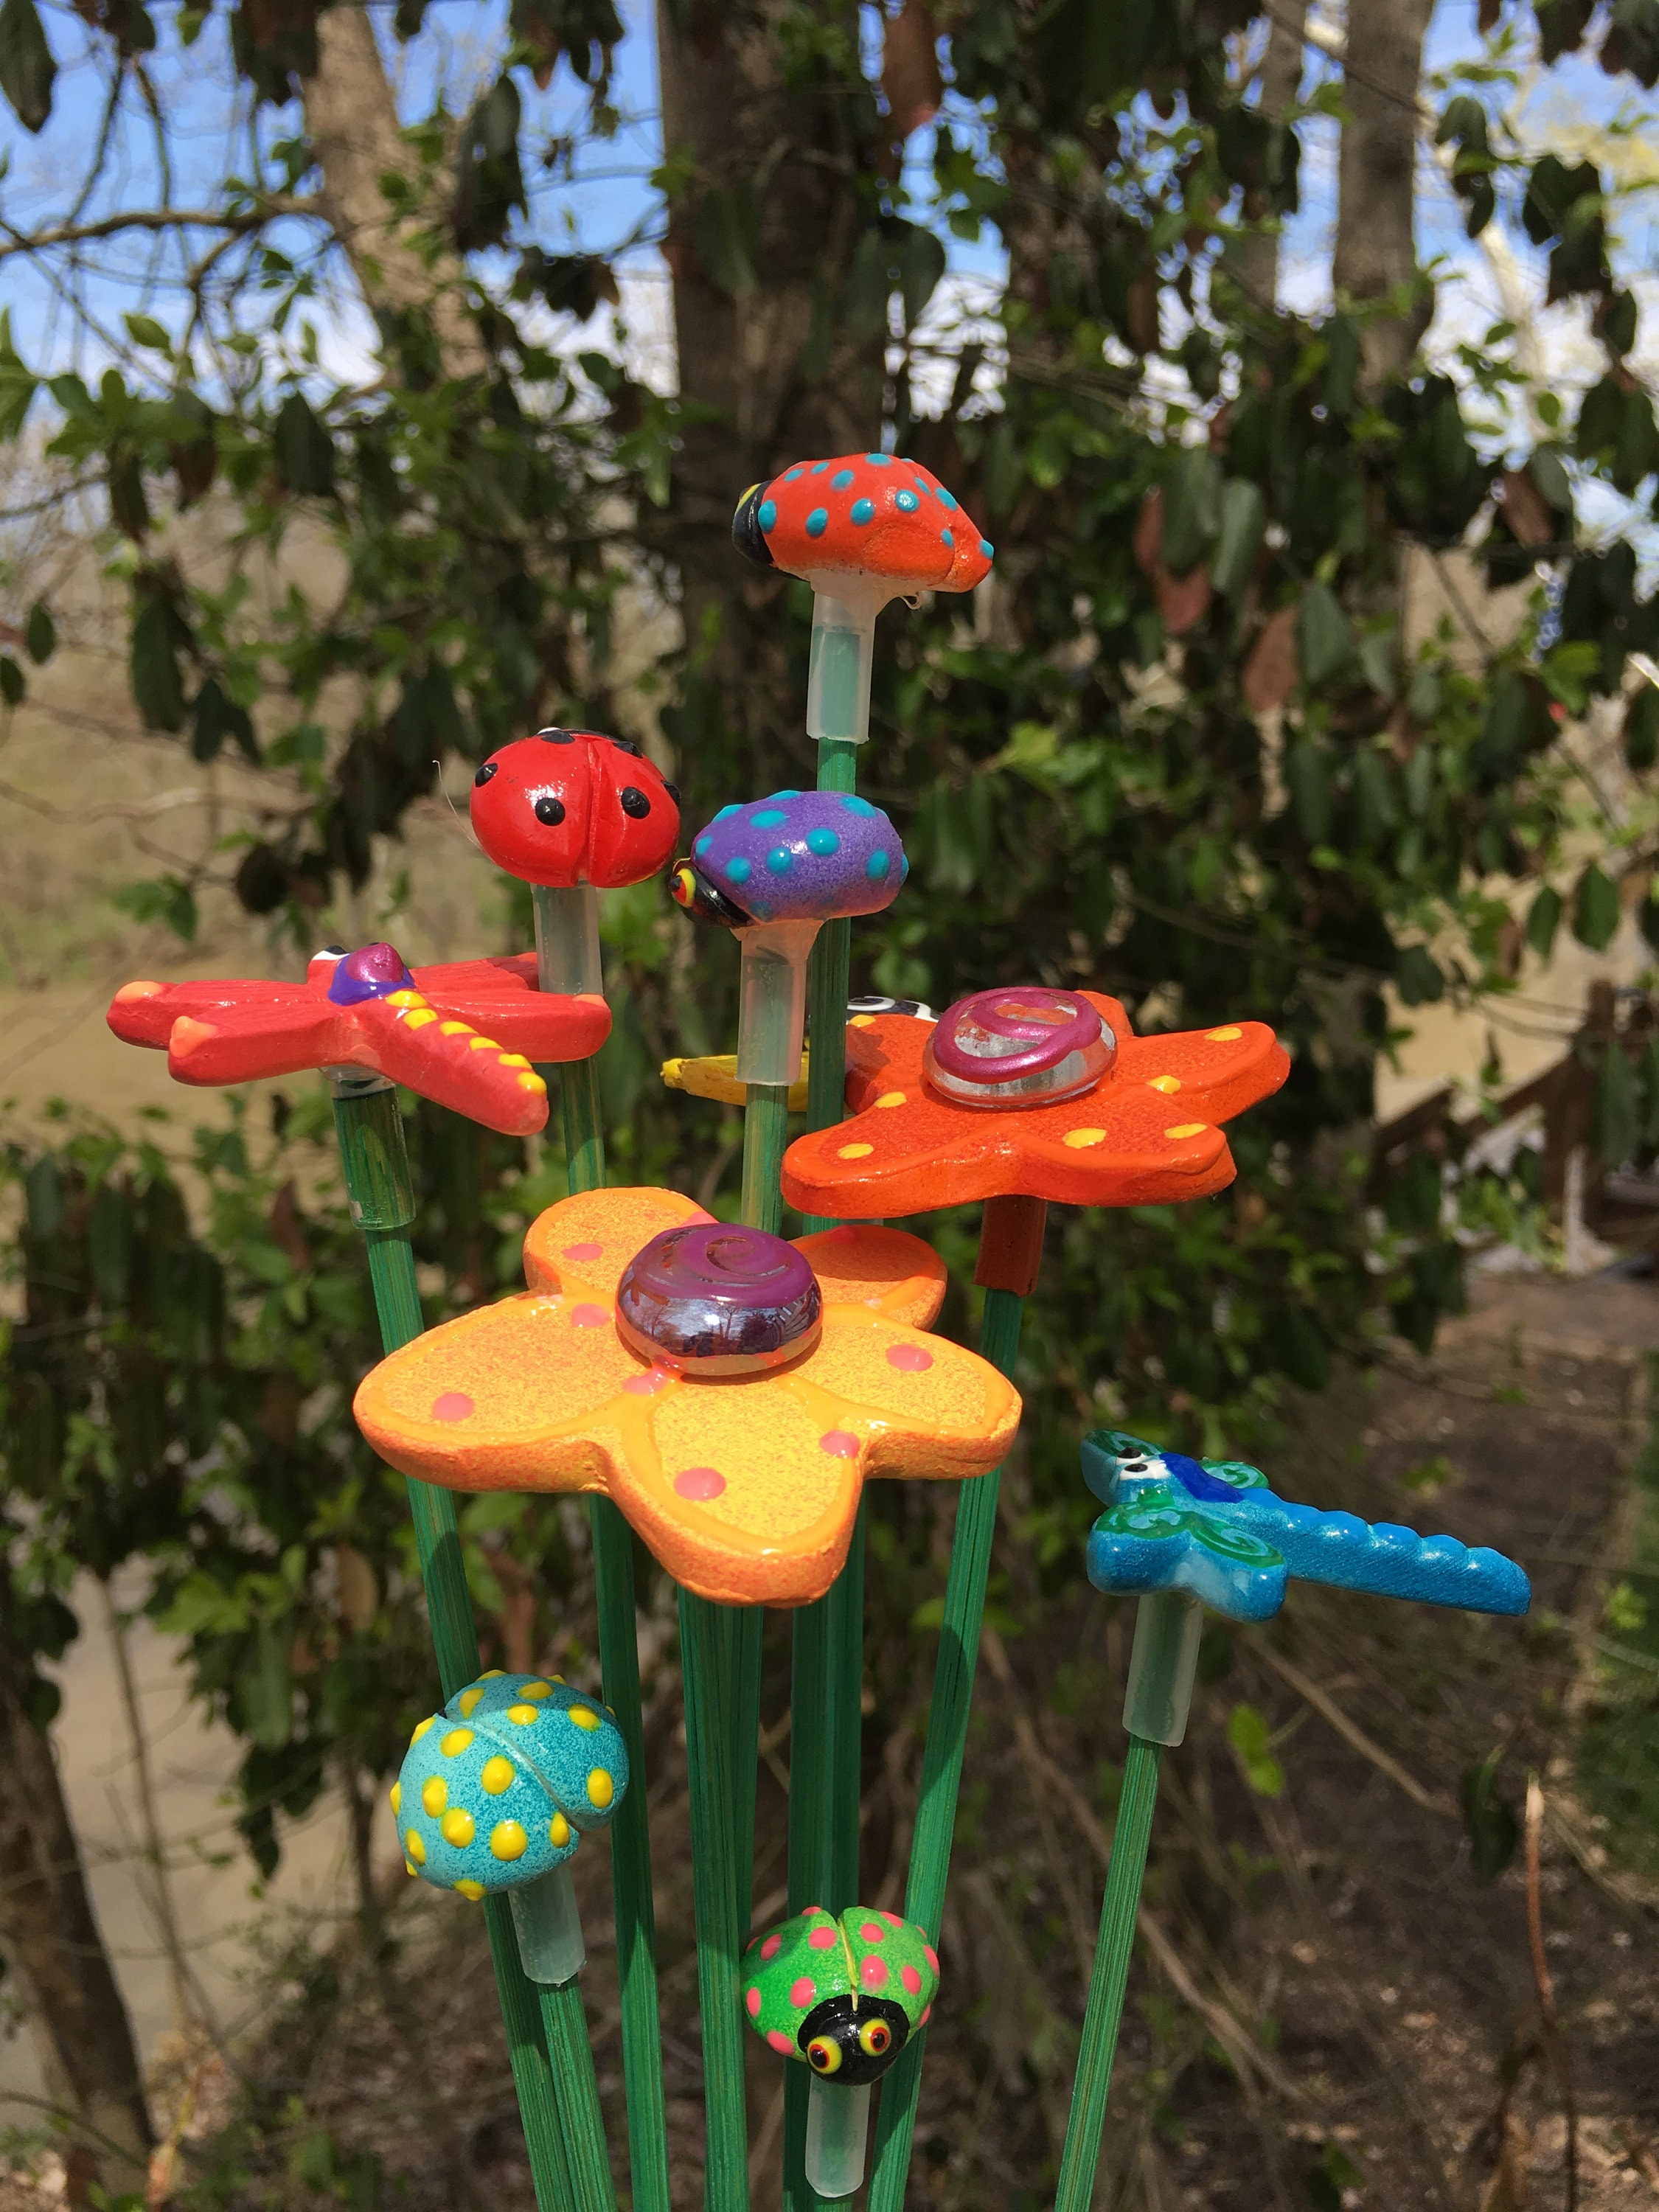 10 Ceramic Cute Garden Stakes, Garden Stakes,Potted plants ...